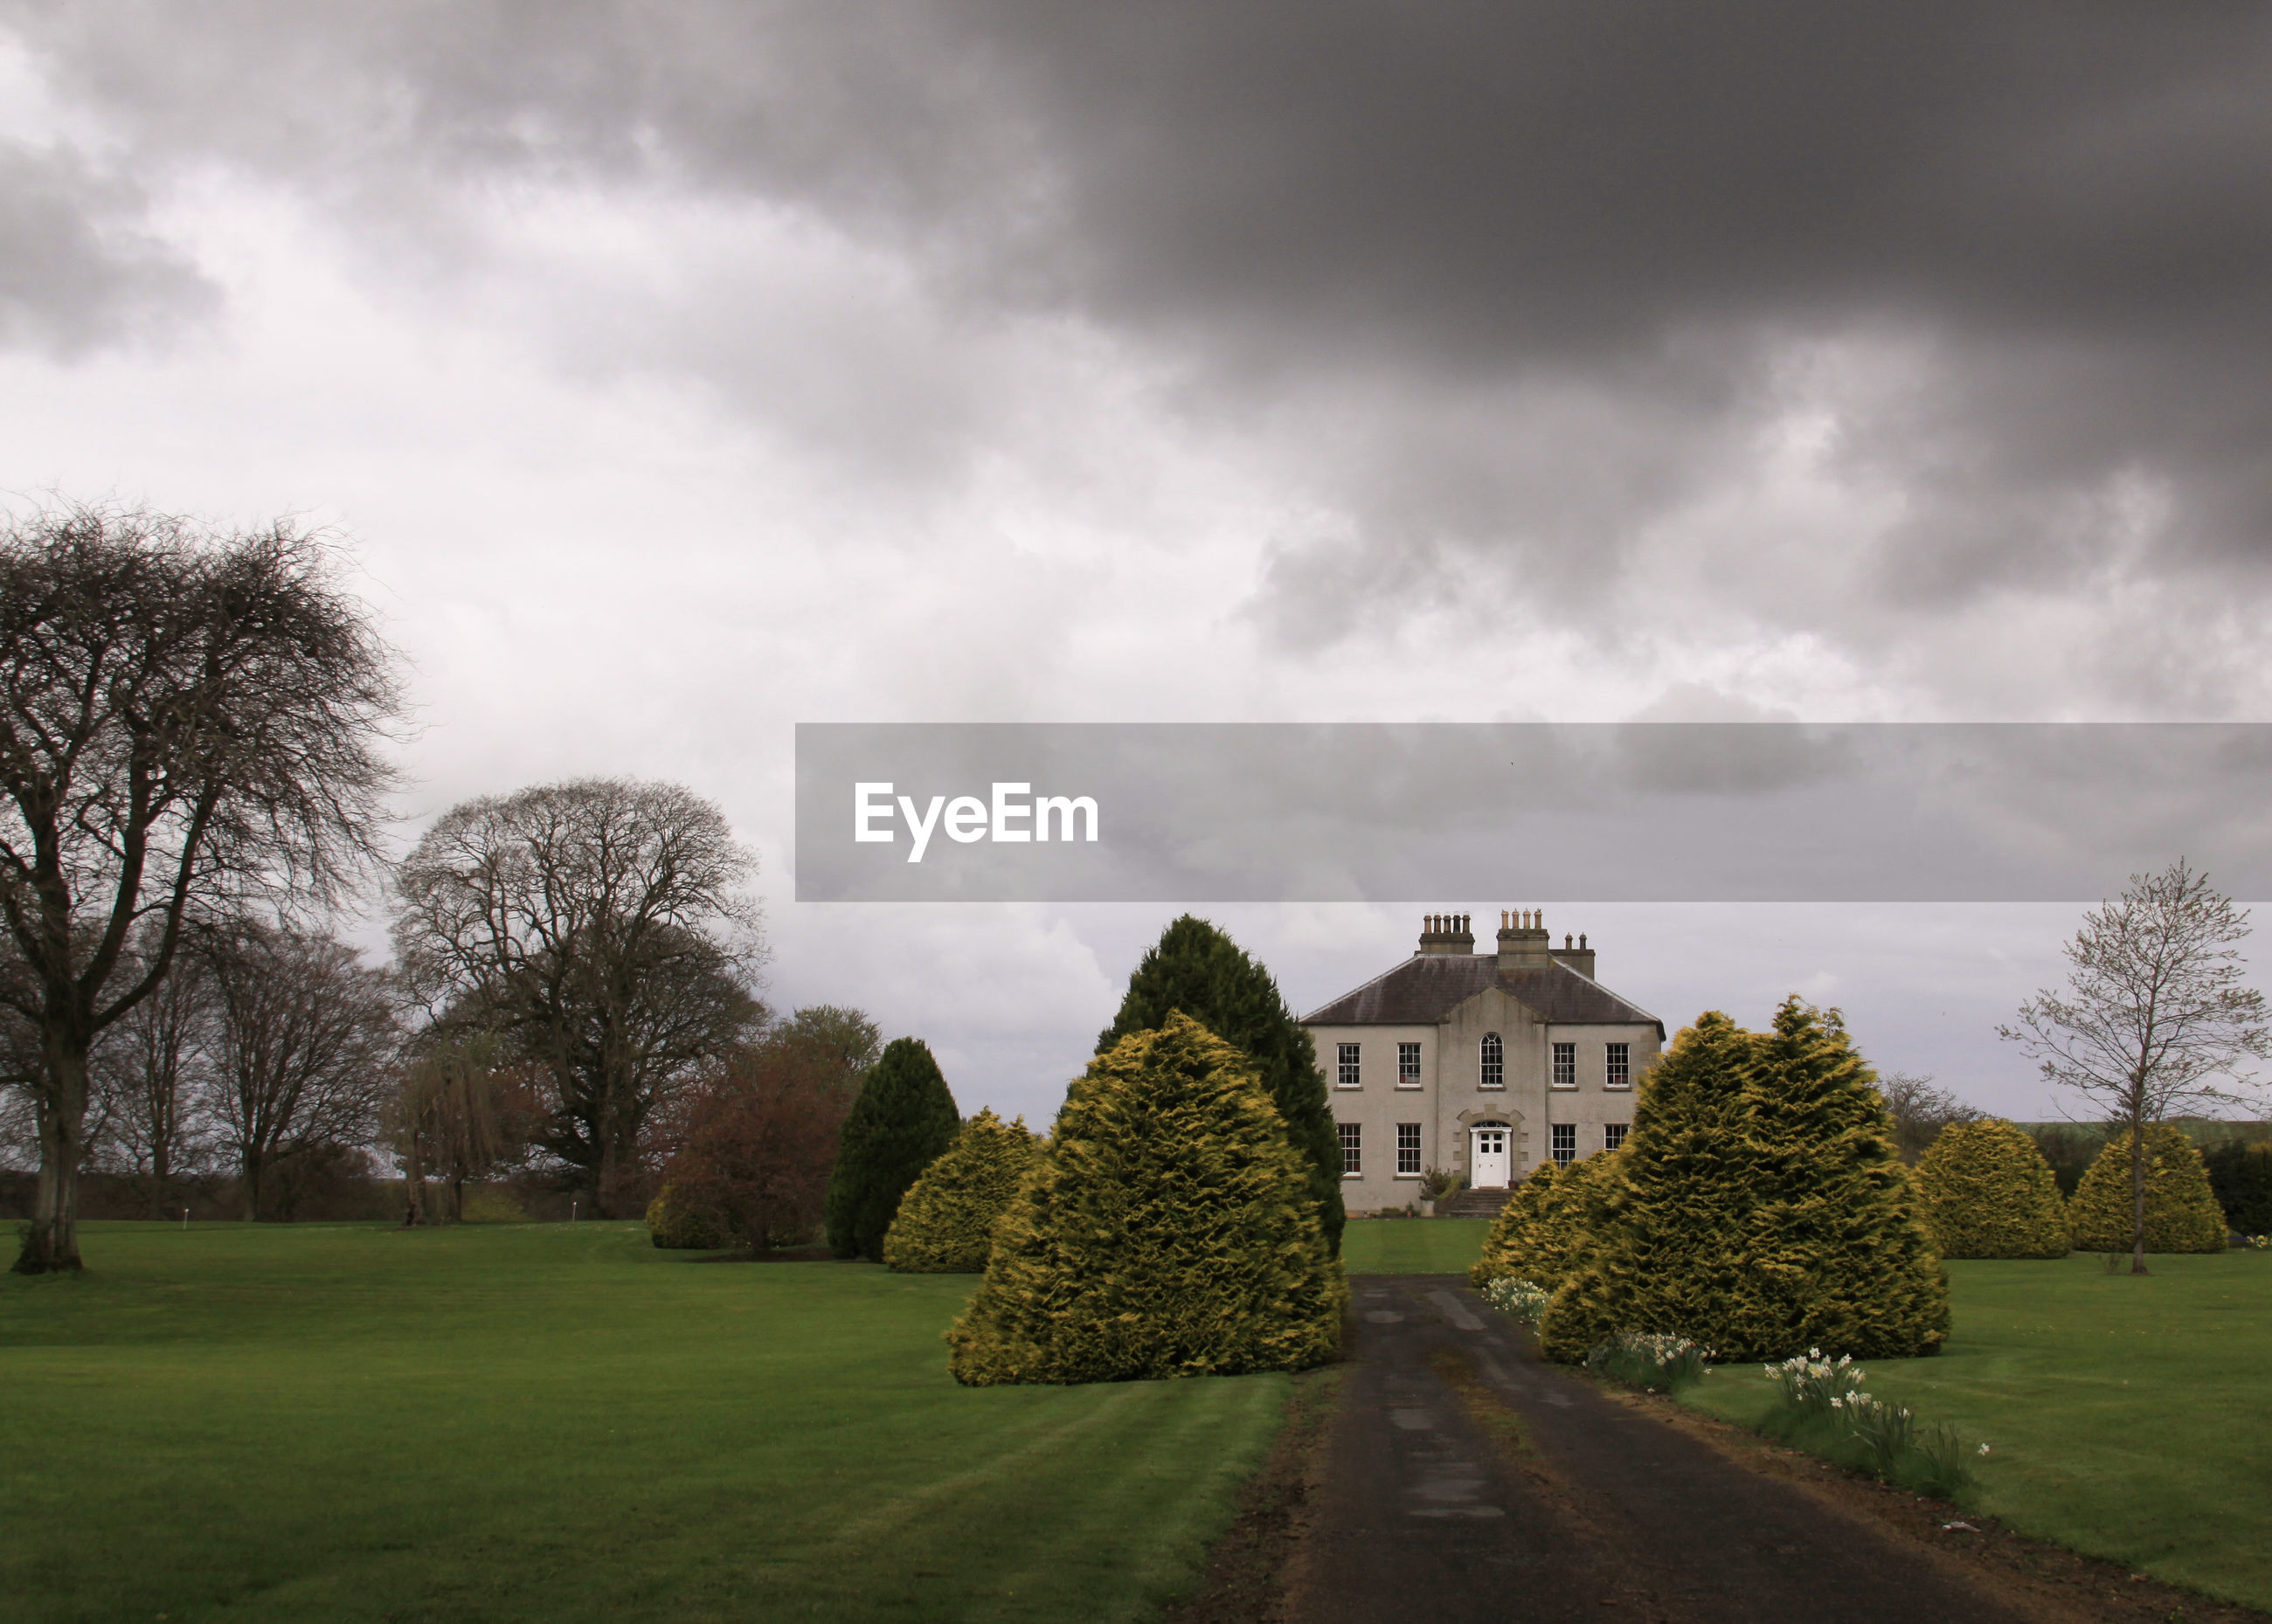 Haunted castle or house in ireland with dark clouds